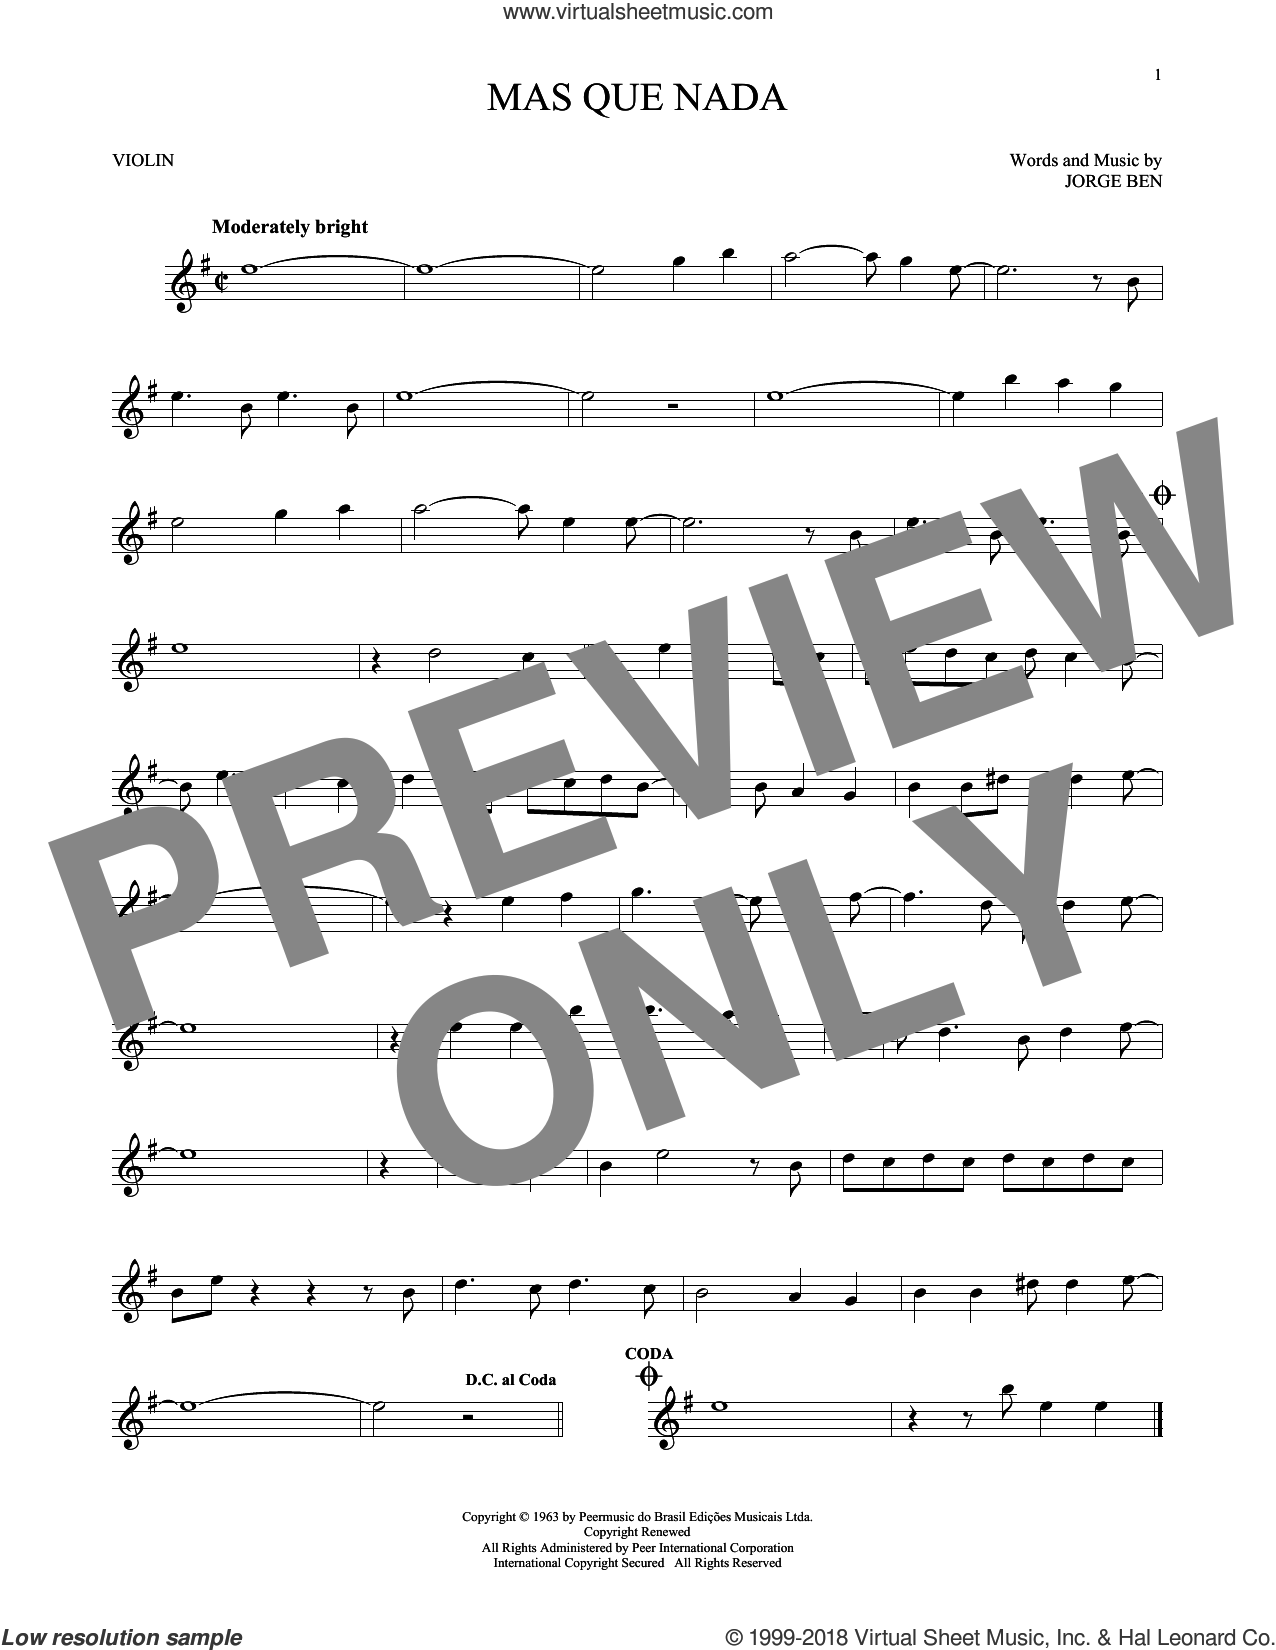 Mas Que Nada (Say No More) sheet music for violin solo by Sergio Mendes and Jorge Ben, intermediate skill level